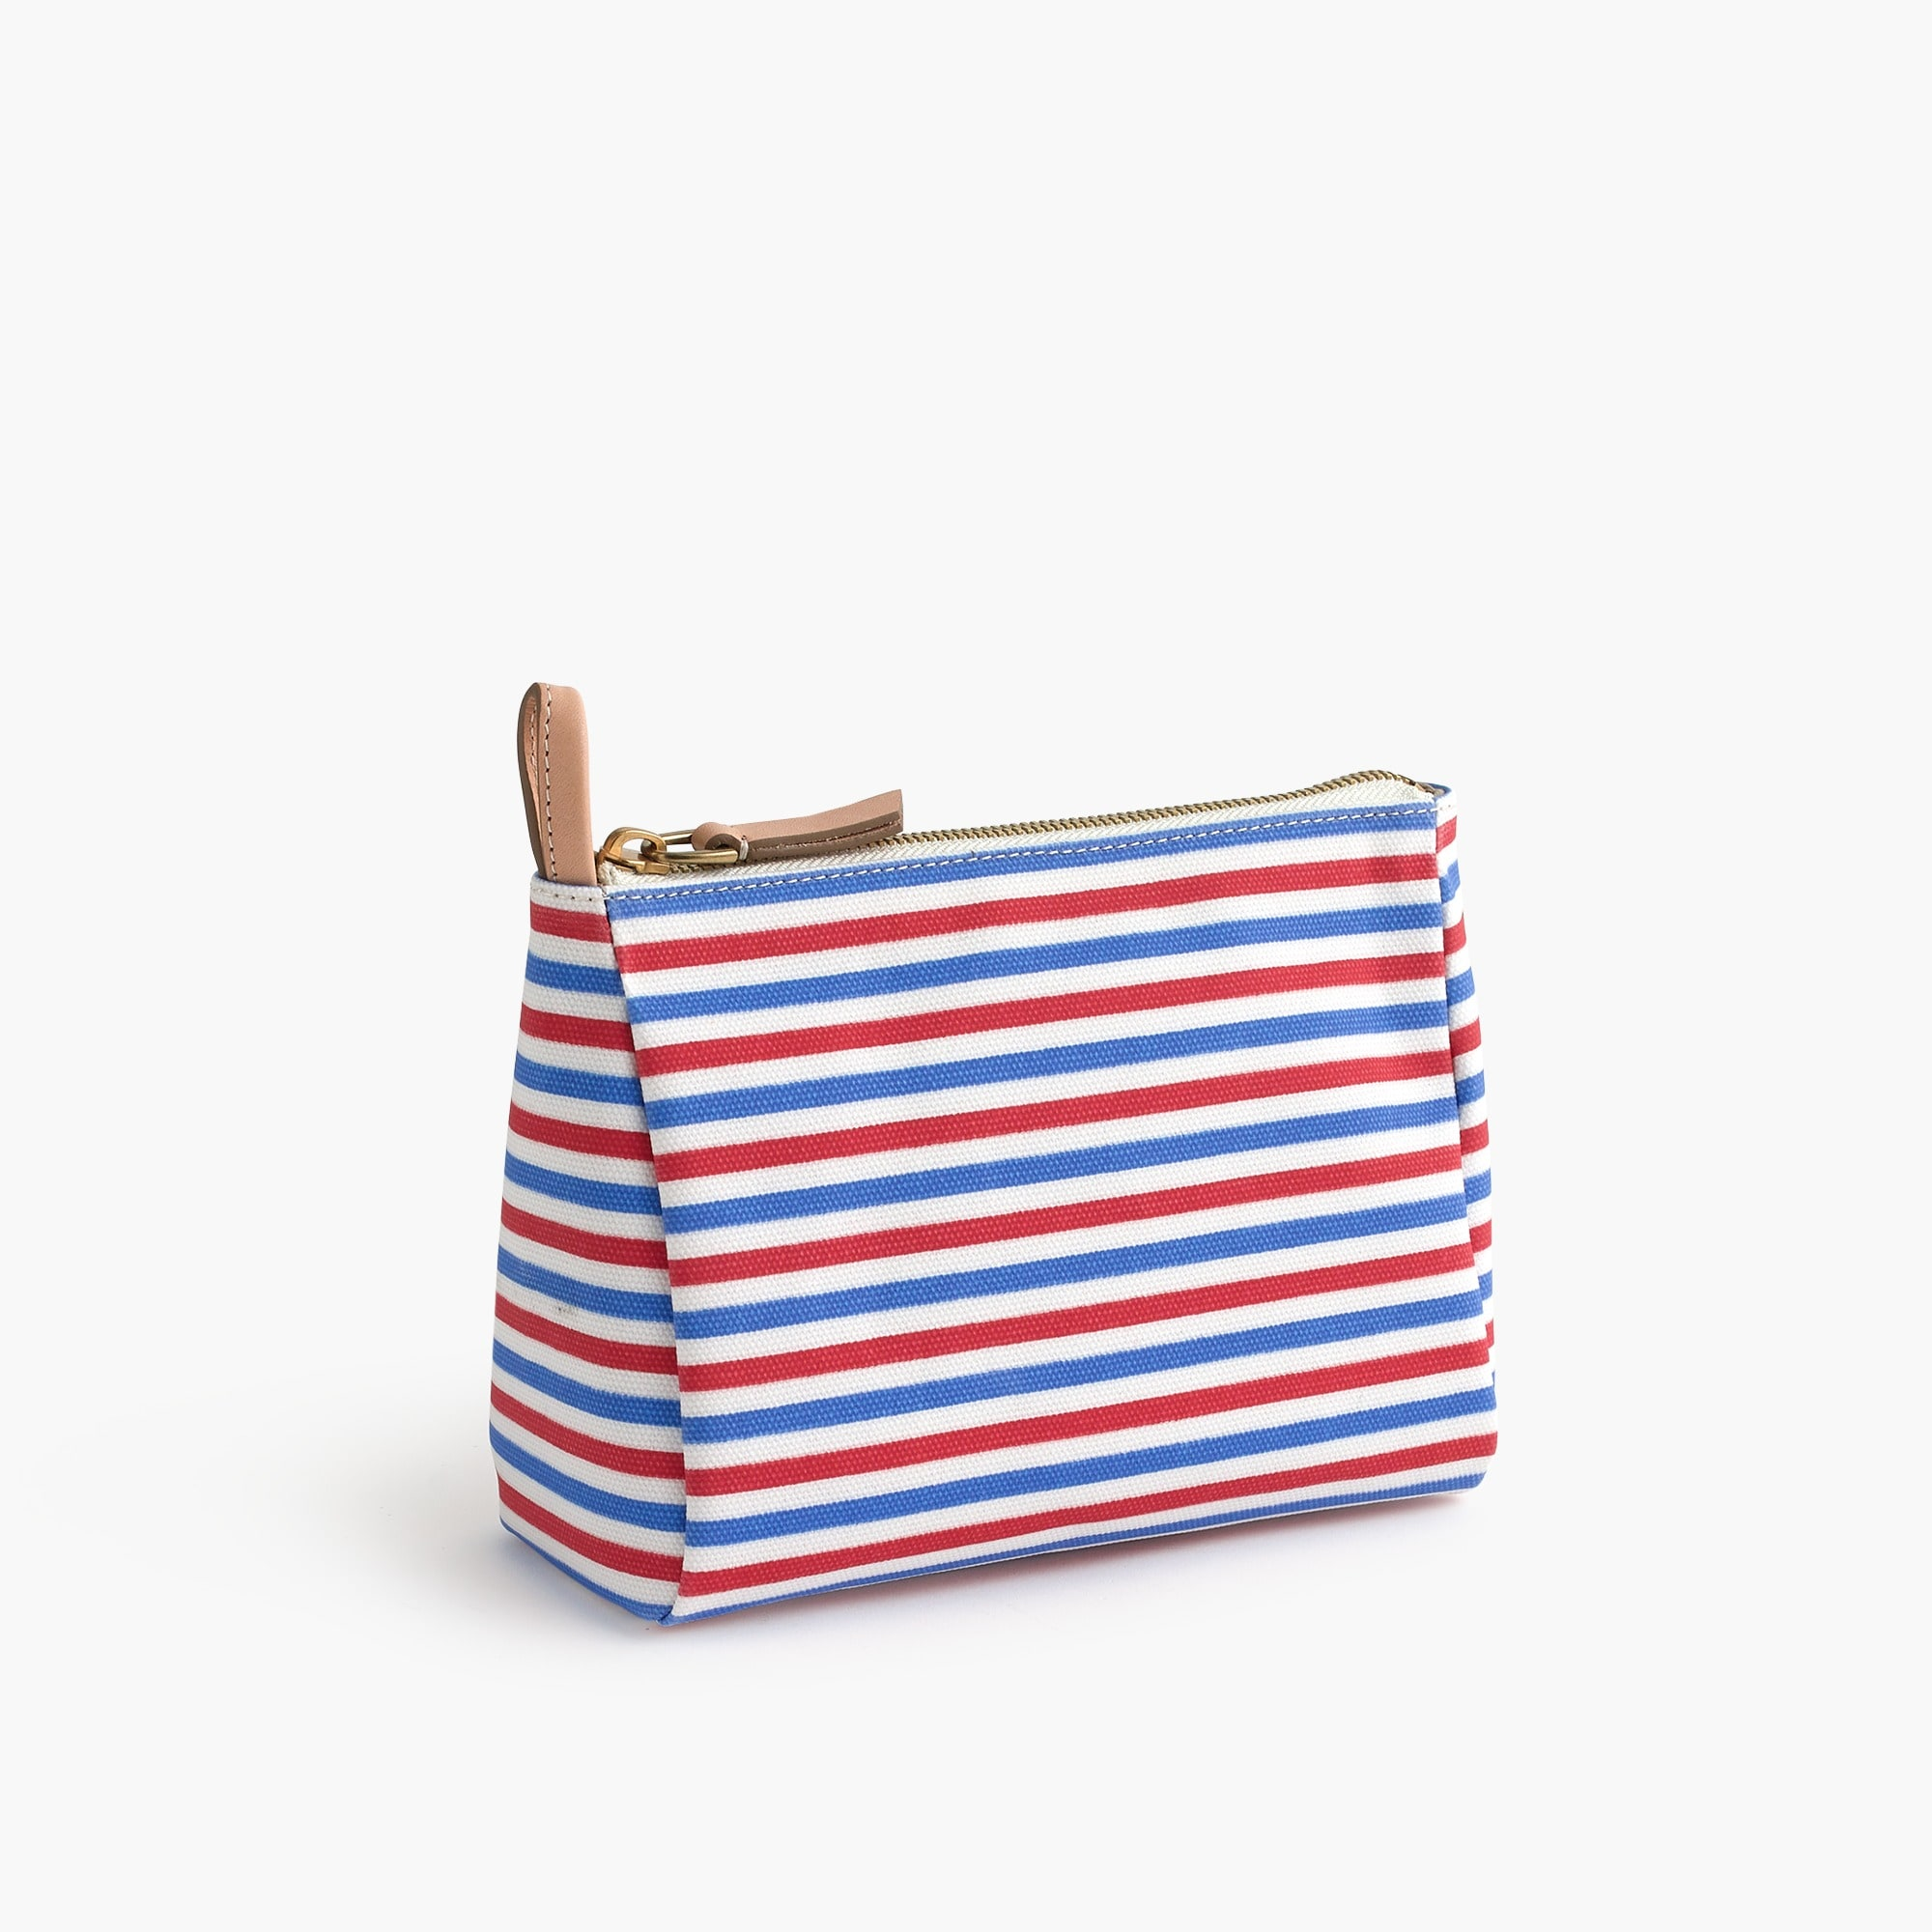 Image 1 for Striped cosmetic case